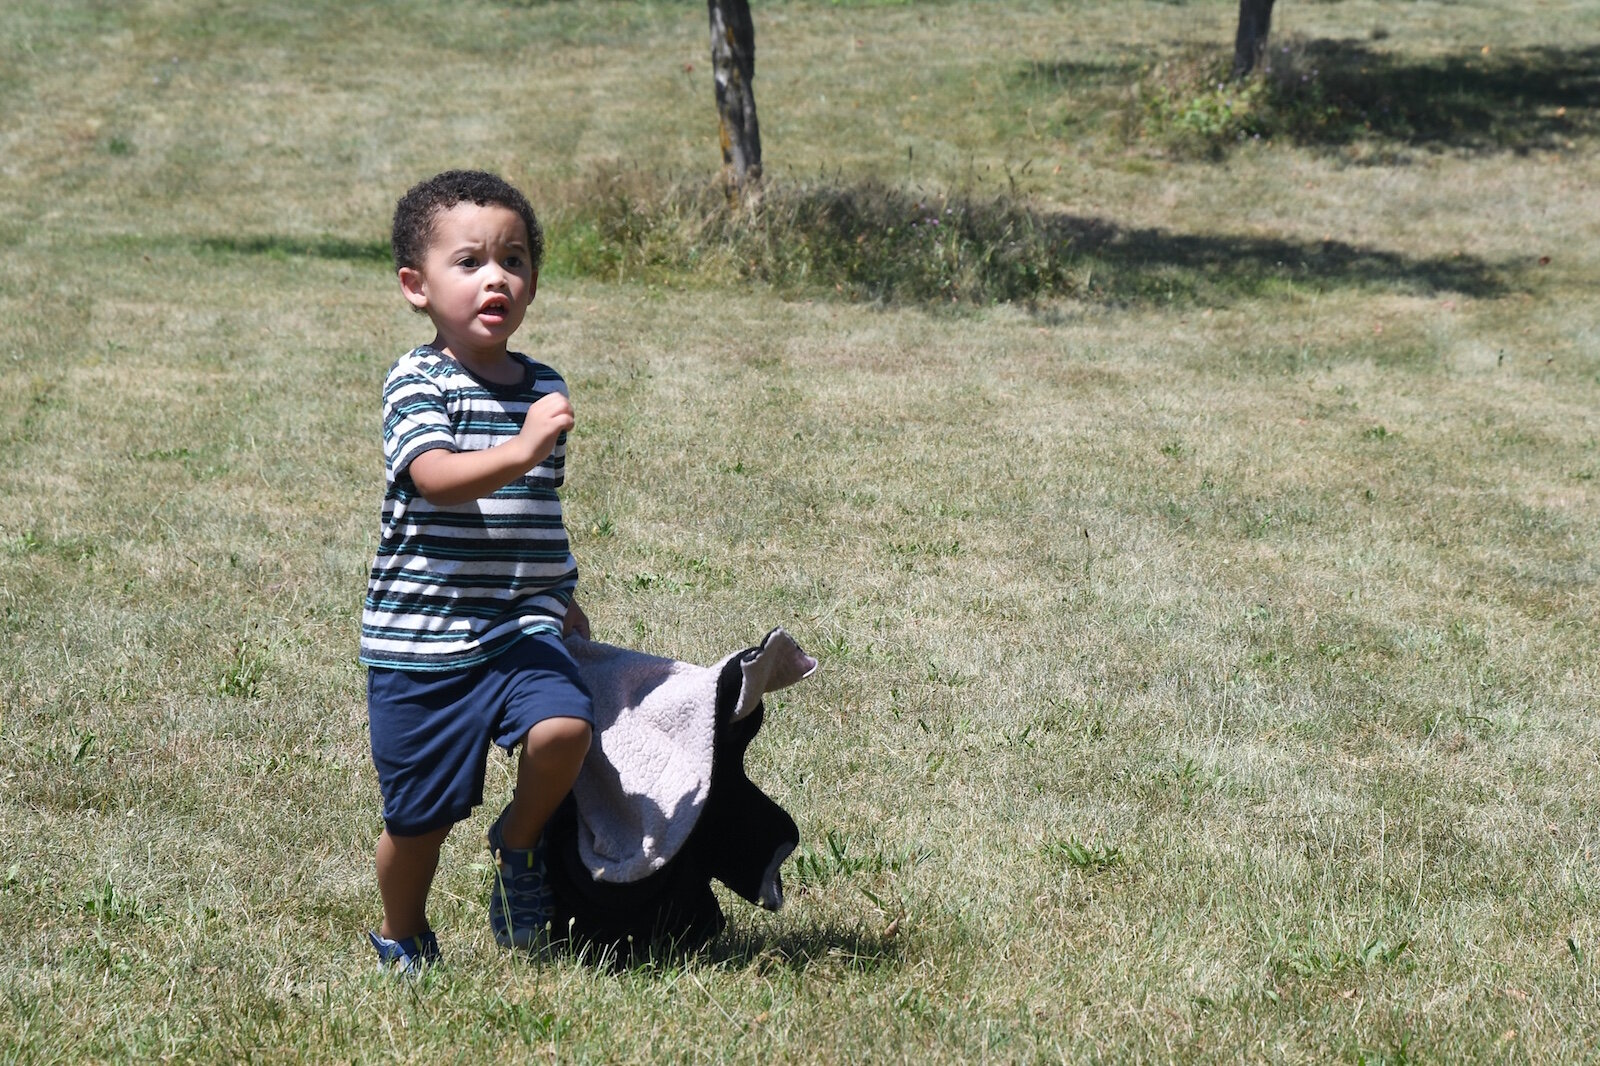 Greyson Hampton, 3, runs down a hill at Leila Arboretum.